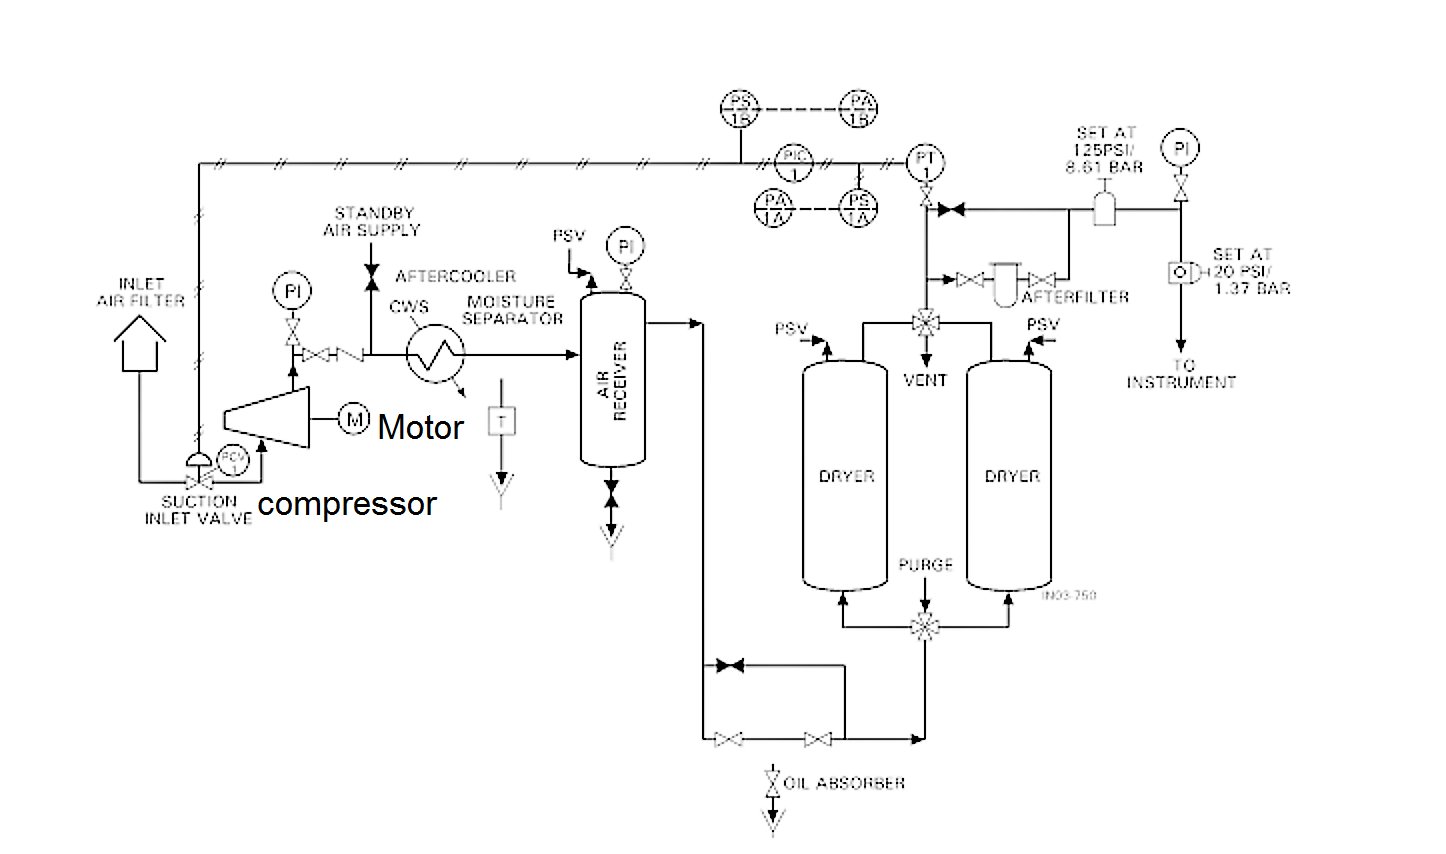 Air Compressor Diagram